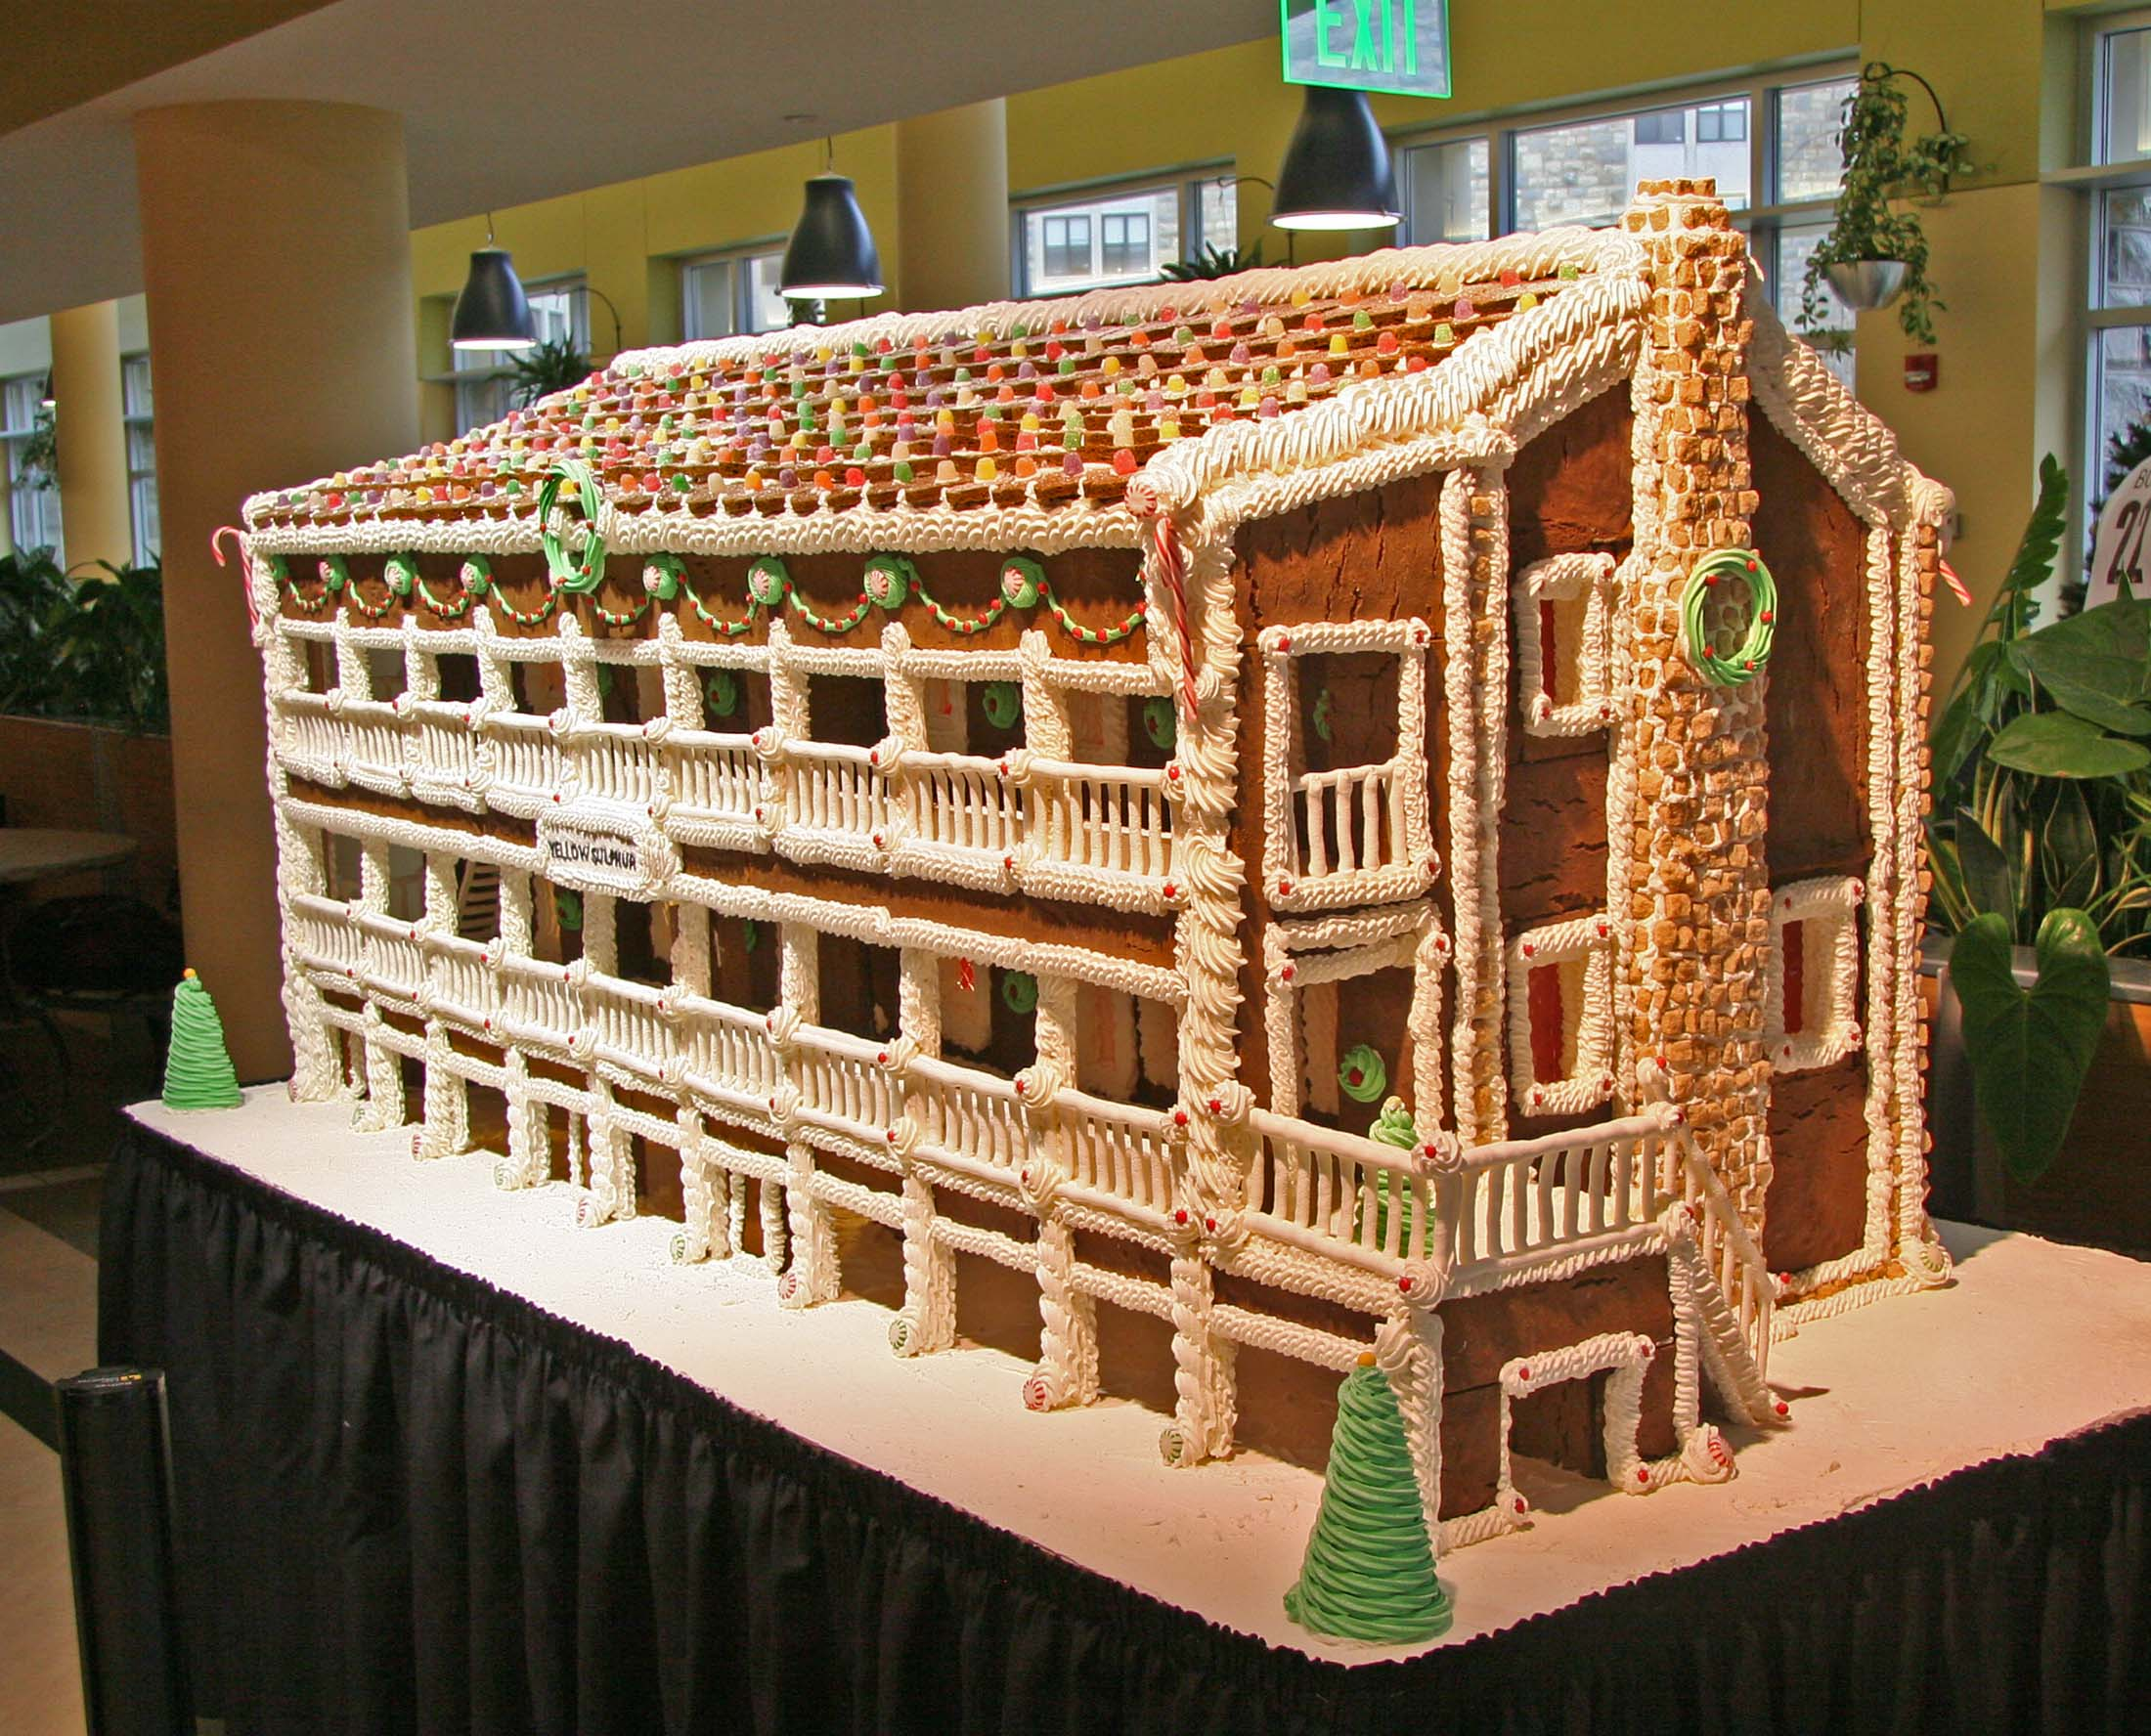 Smashing A Full Image Front Gingerbread It Is A Near Replica West End Market Boasts Gingerbread House Modeled After Local Gingerbread House Book Gingerbread House Kingman Az curbed The Gingerbread House